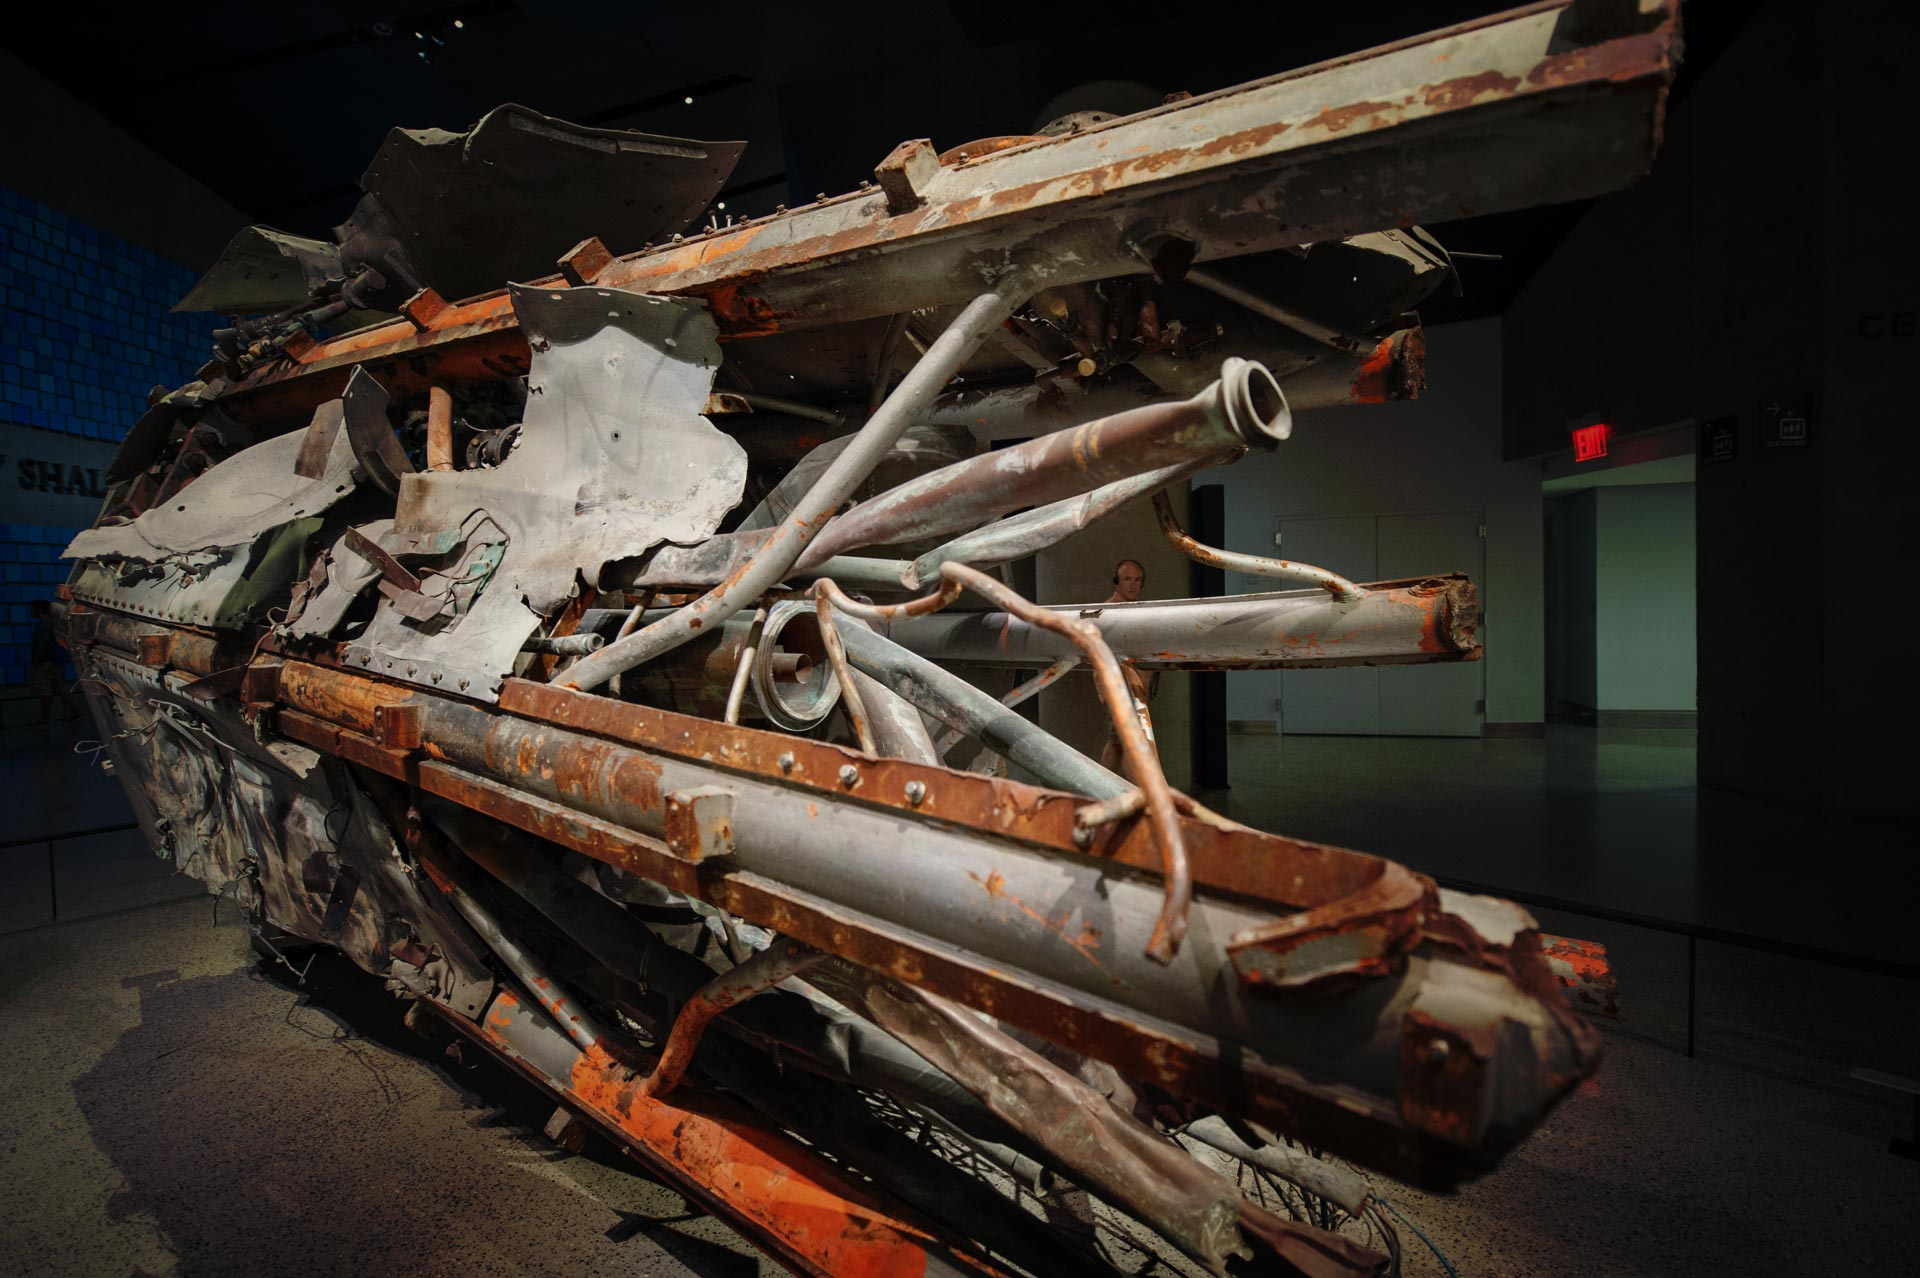 The base of the massive 360 foot antenna that topped the North Tower at National September 11 Memorial Museum in New York, NY, USA